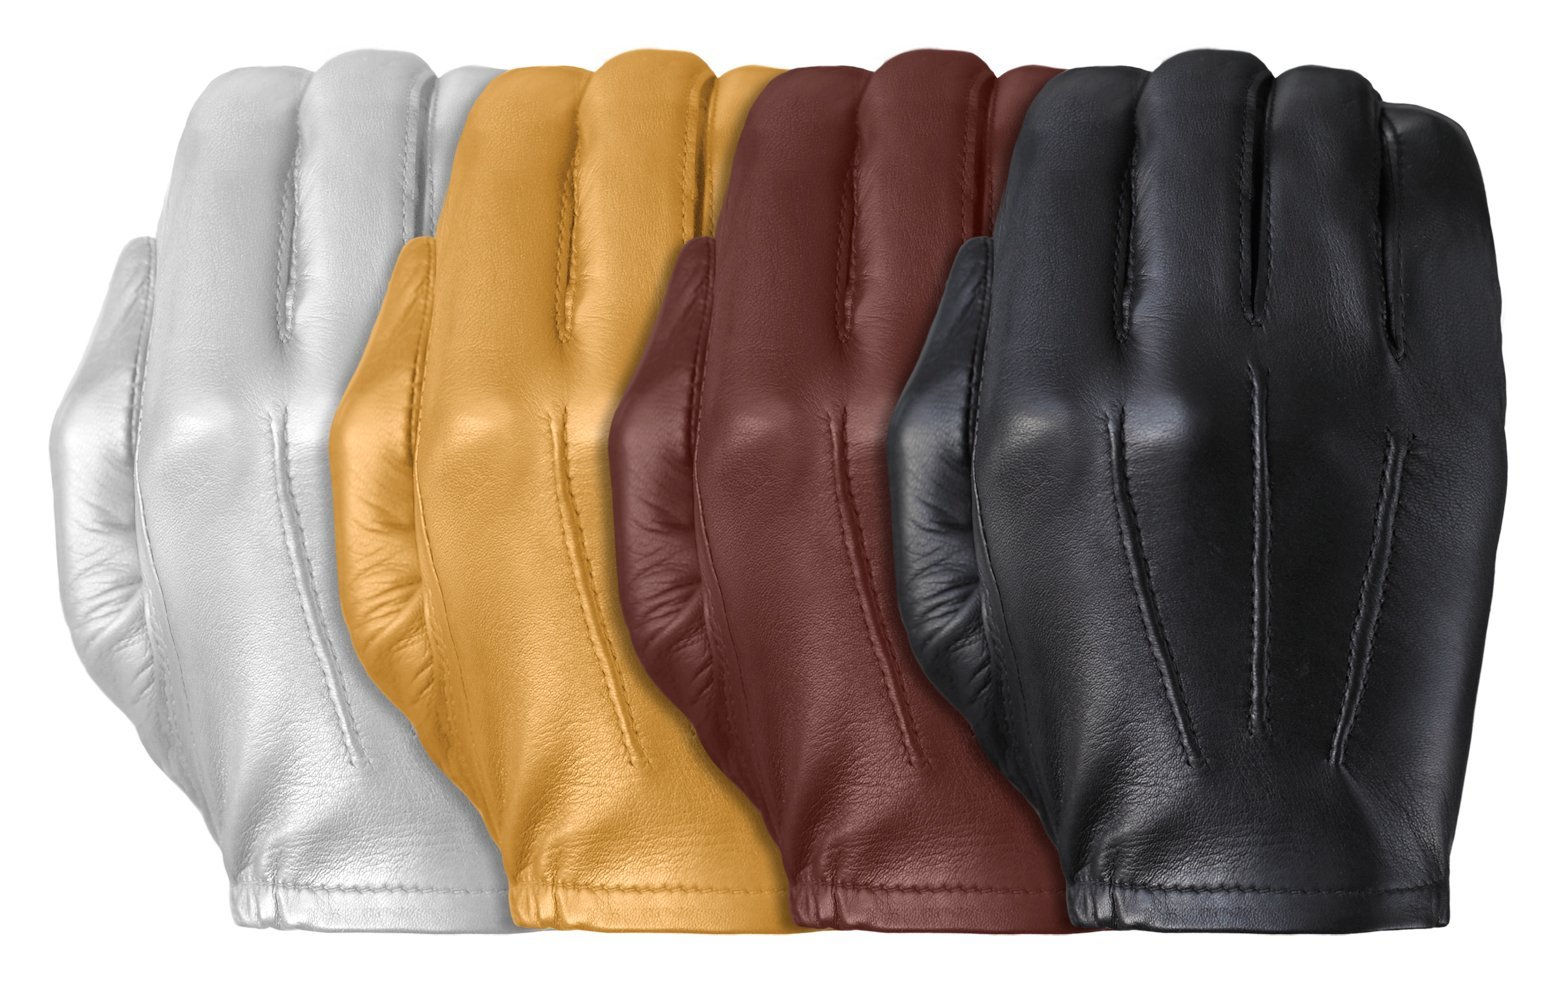 Tough Gloves Men's Ultra Thin Patrol Cabretta unlined leather gloves Size 9 Color White by Tough Gloves (Image #3)